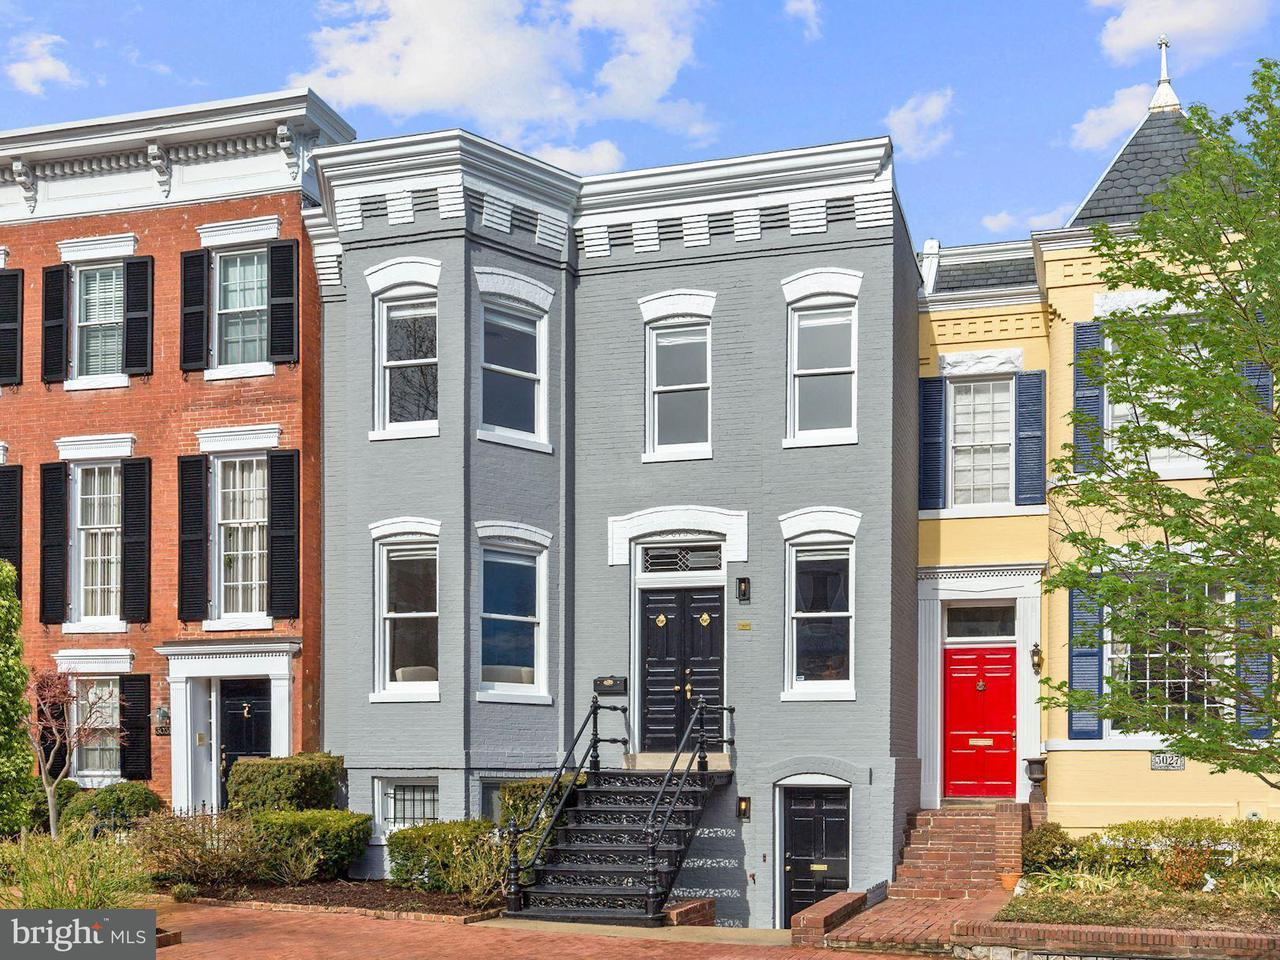 Townhouse for Sale at 3029 O St Nw 3029 O St Nw Washington, District Of Columbia 20007 United States